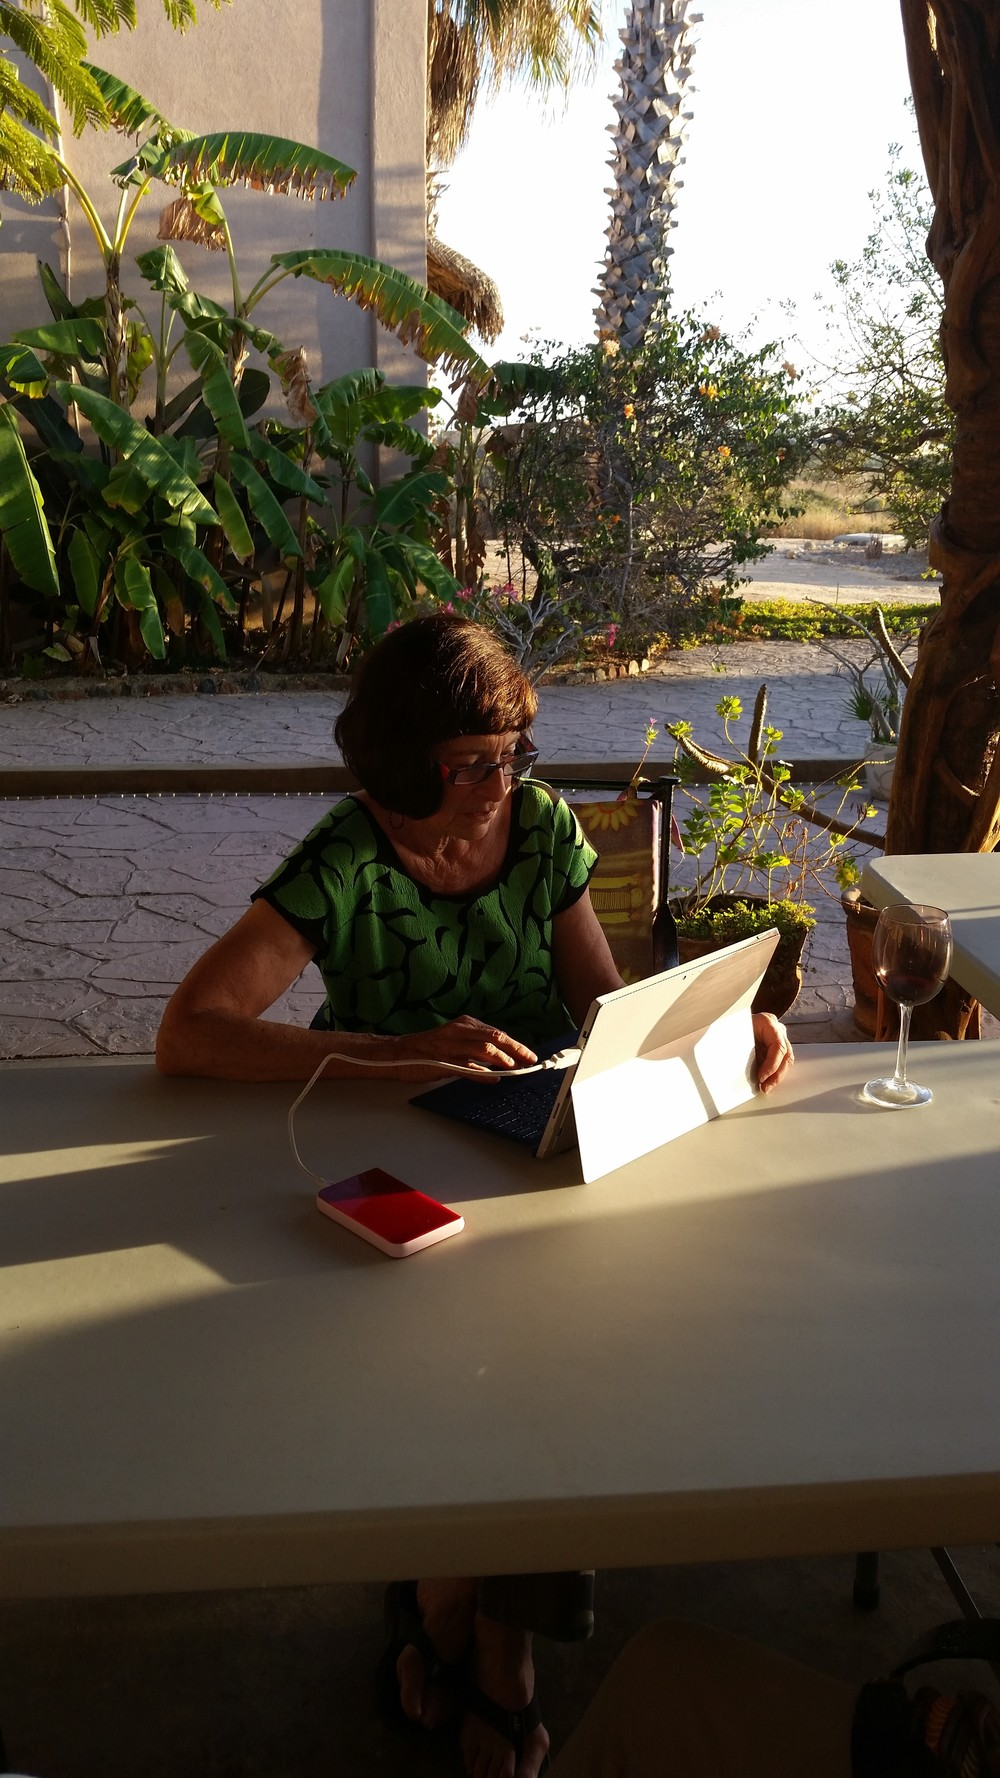 Julie working on her manuscript